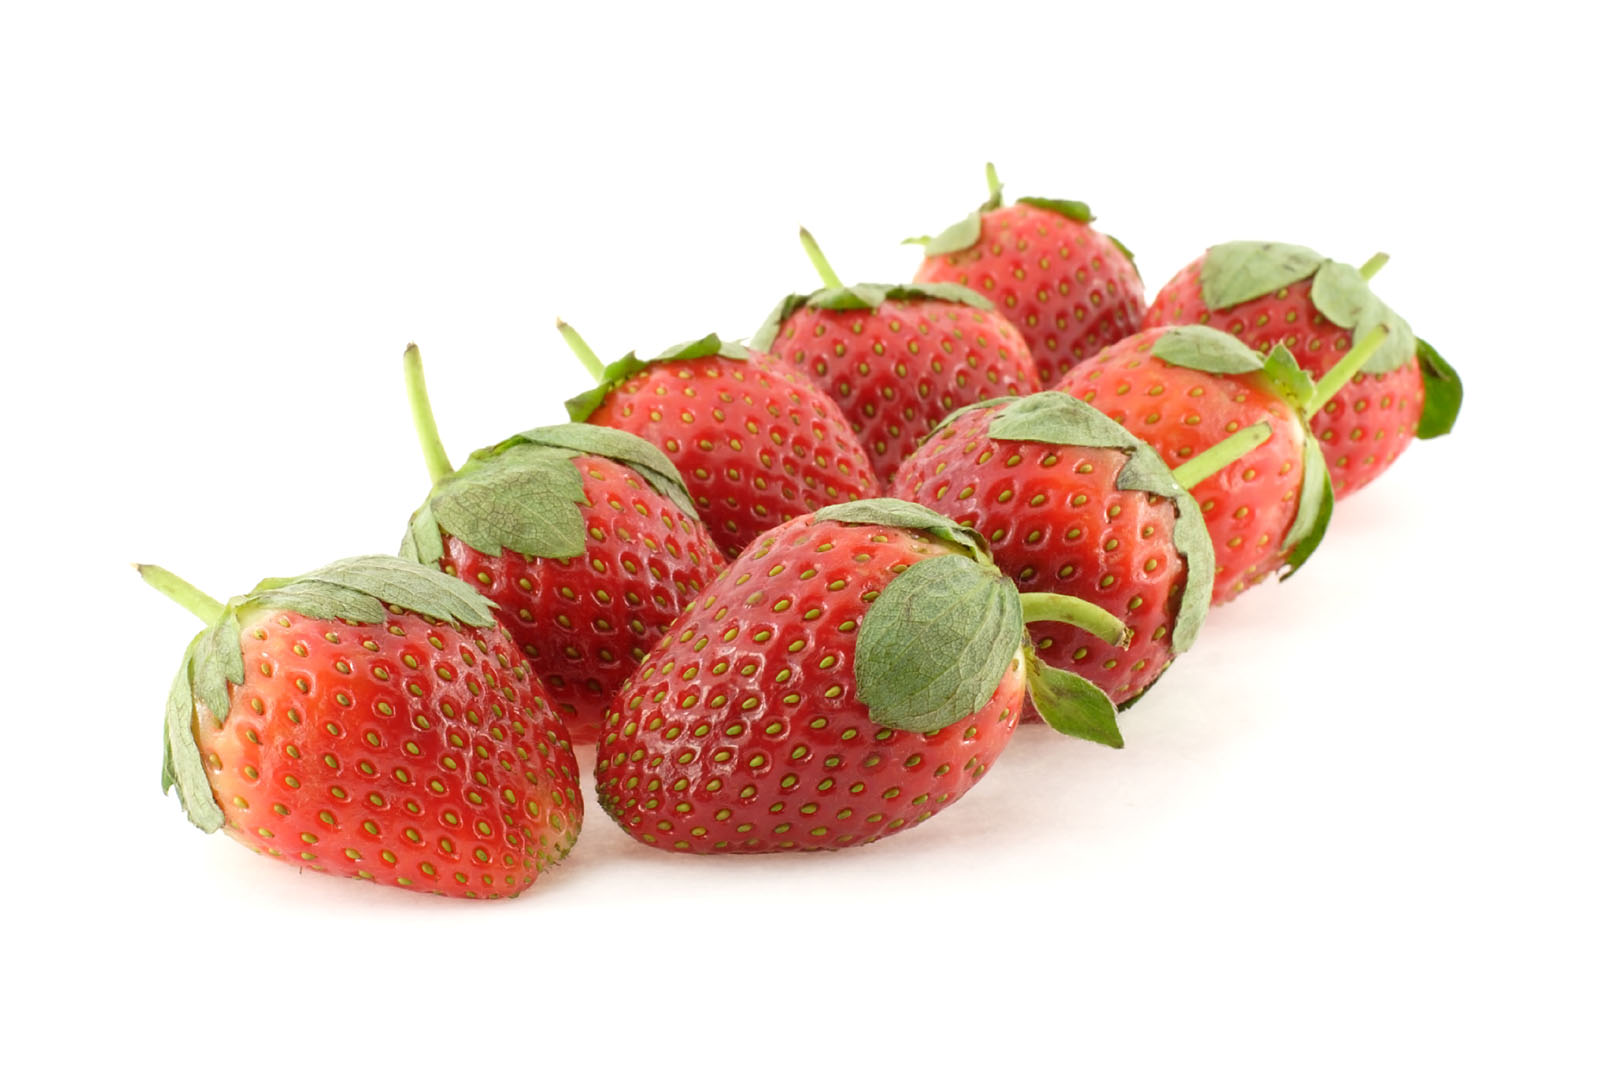 Strawberry close-up high-definition 11462